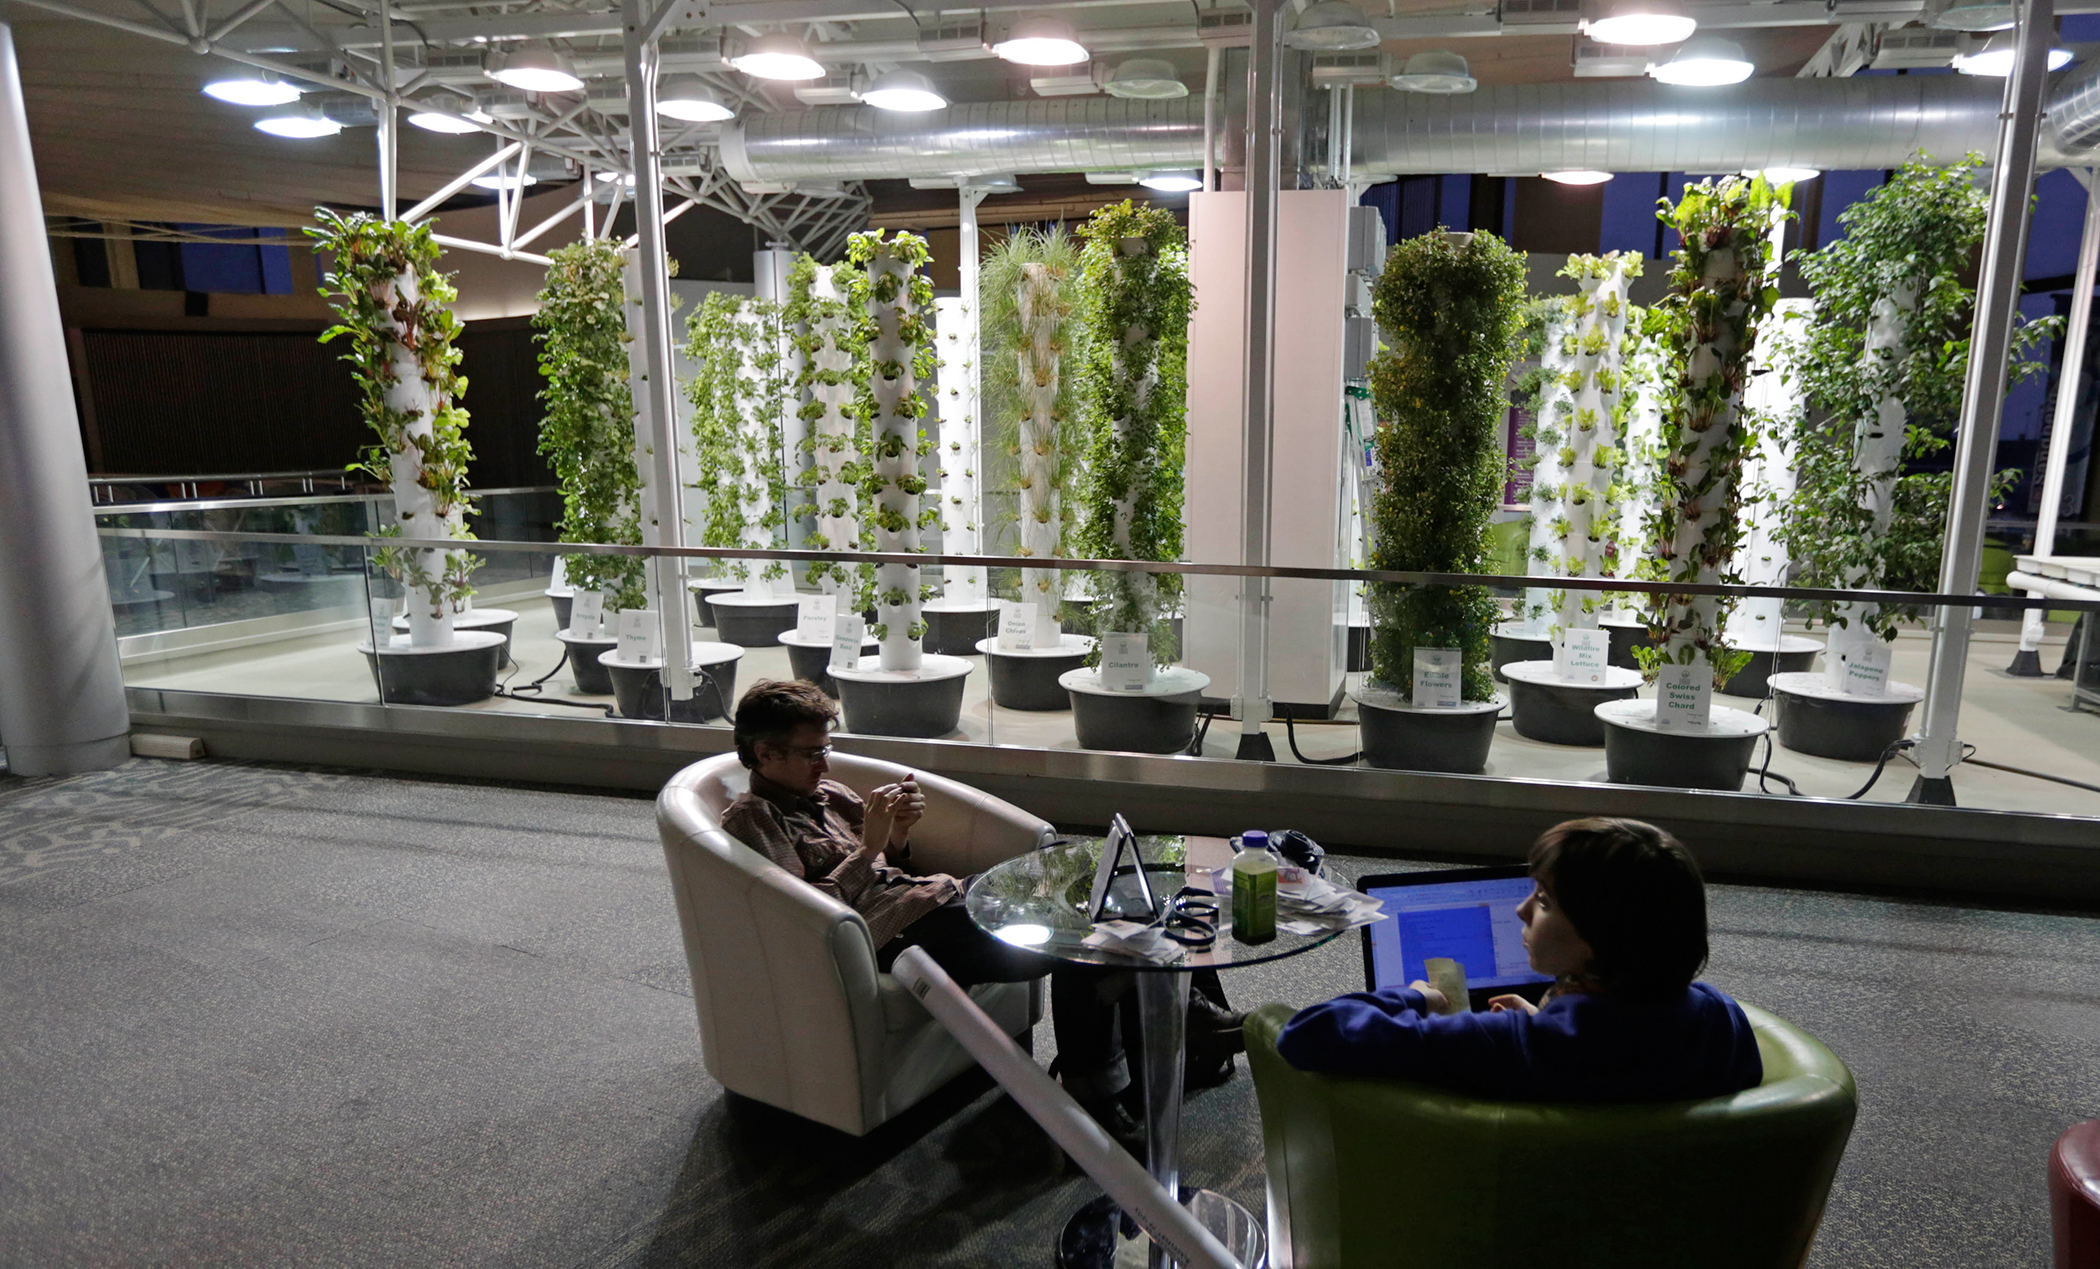 In this photo taken December 18, 2012, at O'Hare International Airport in Chicago, travelers David Janesko and Tess Menotti relax between flights next to O'Hare's Urban Garden where fresh herbs are grown and used in airport restaurants. Getting stranded at an airport once meant camping on the floor and enduring hours of boredom in a kind of travel purgatory with nothing to eat but fast food. Tough economic times are helping drive airports to make amends and transform terminals with a bit of bliss: spas, yoga studios, luxury shopping and restaurant menus crafted by celebrity chefs.